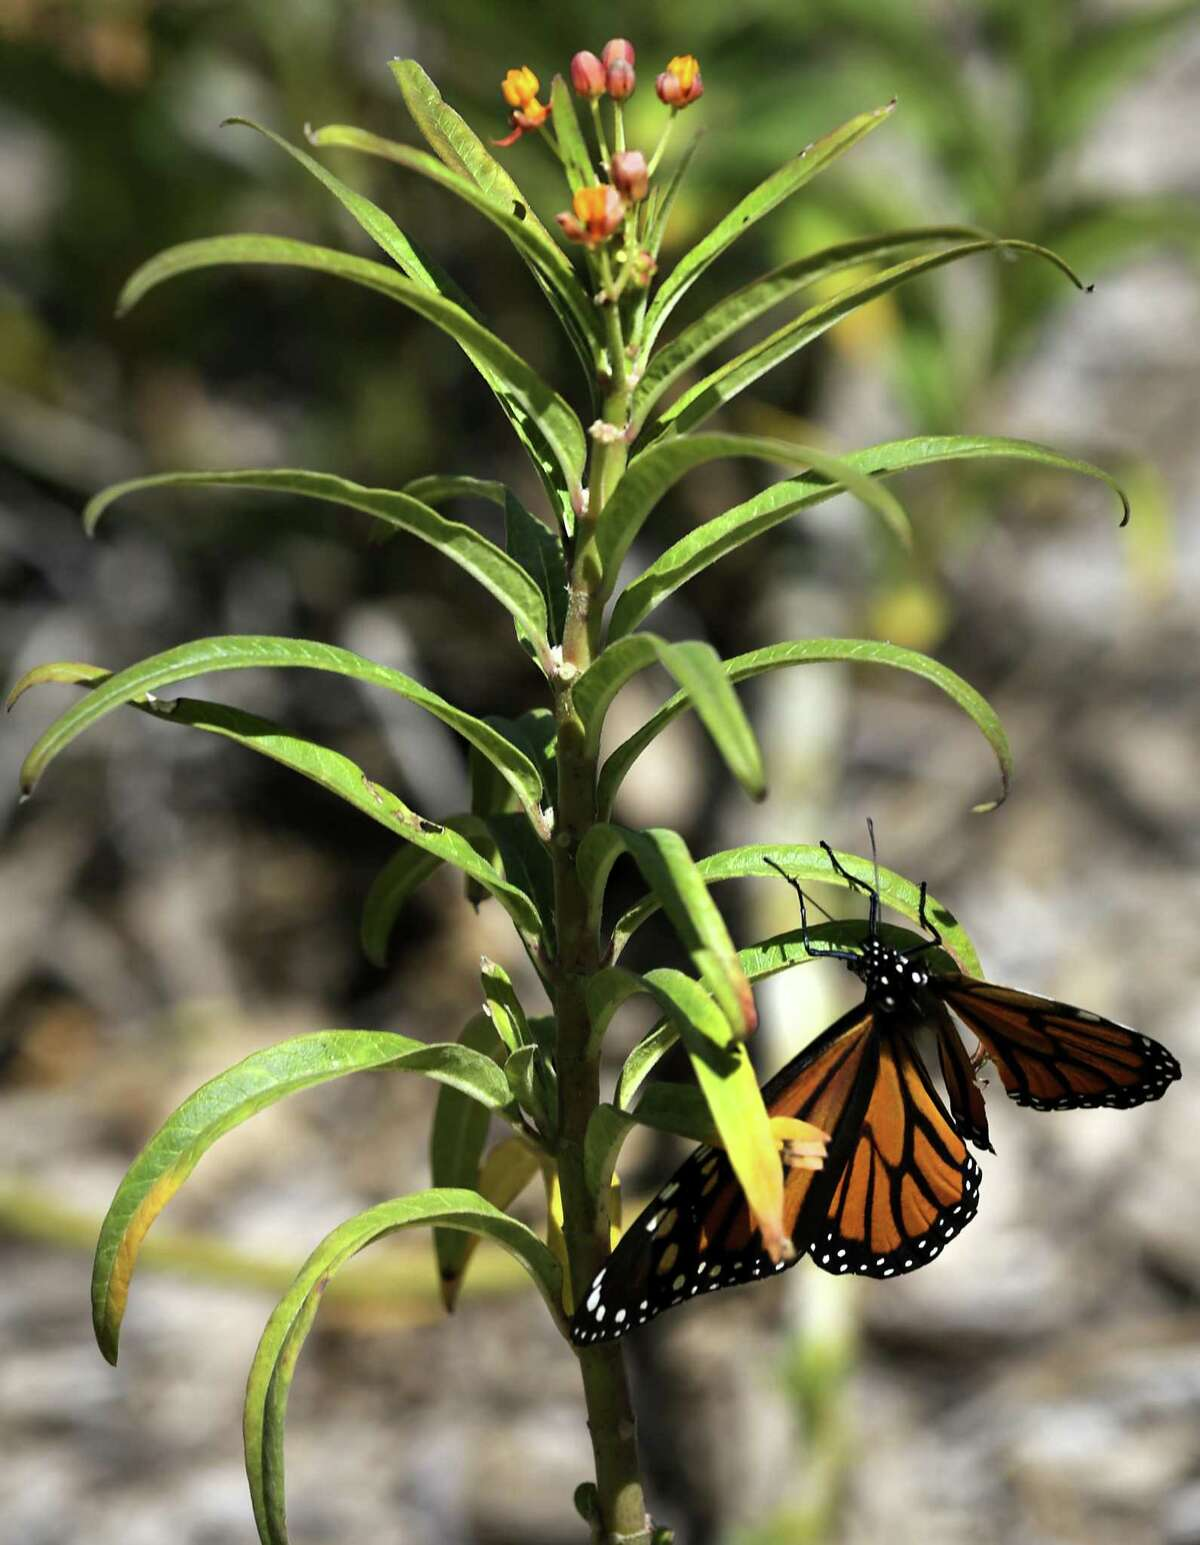 A monarch butterfly with a damaged wing at the National Butterfly Center in Mission, TX, on Thursday, Aug. 17, 2017. The butterfly couldn't manage to fly to a Milkweed plant, the only plant it lays it's eggs on. A Center volunteer gently picked it up and placed it on a Milkweed so it could lay it's eggs before it dies.